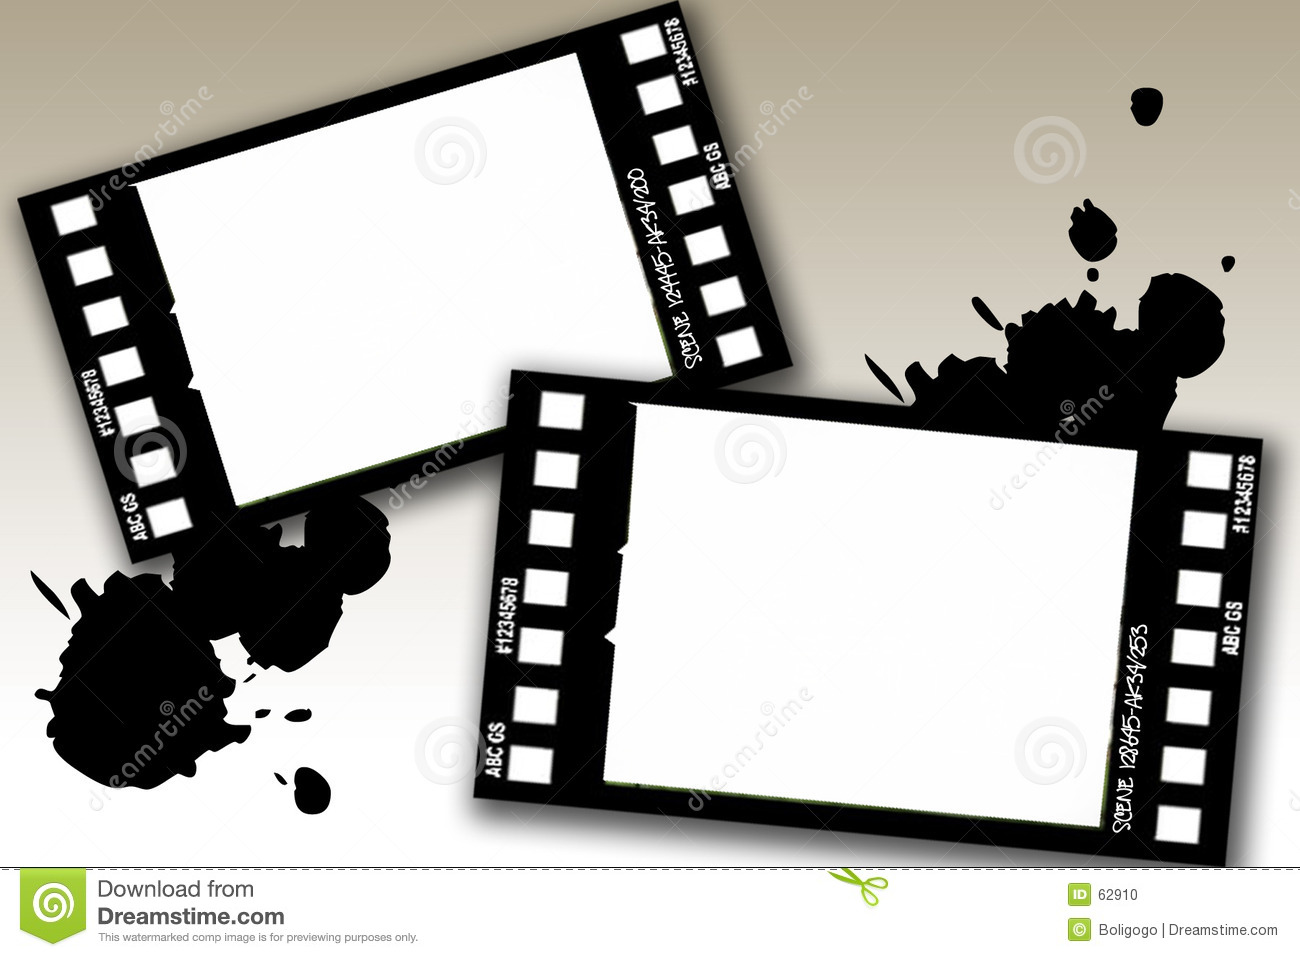 Grunge film frames stock illustration. Illustration of canvas - 62910